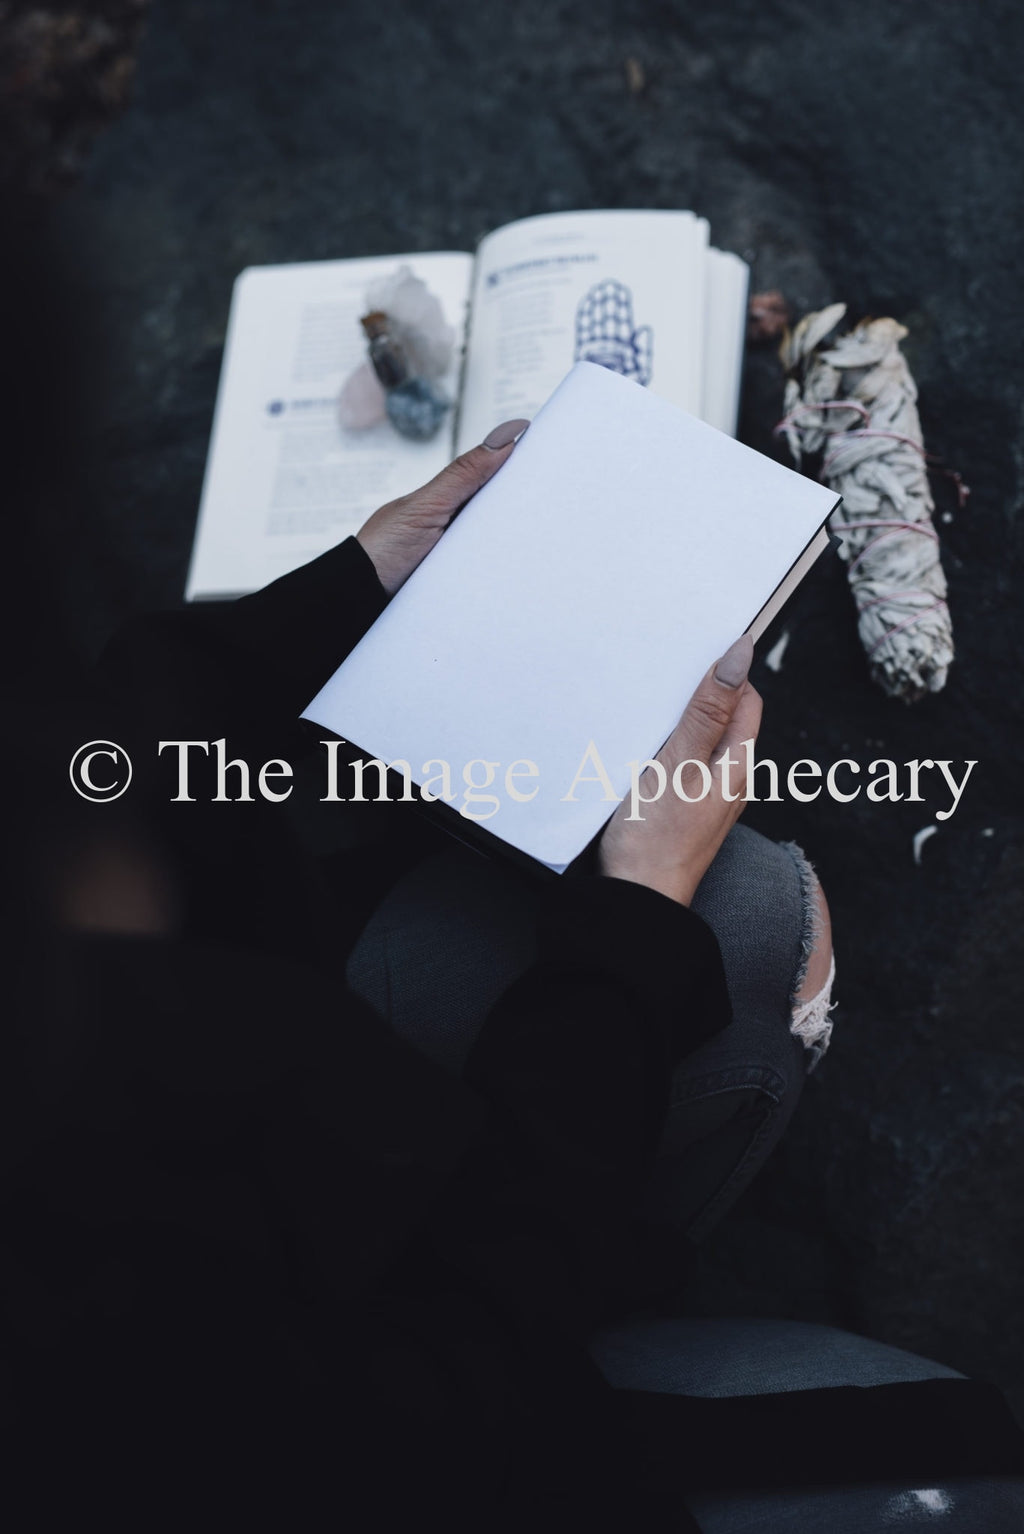 The Image Apothecary_3729M - Stock Photography by The Image Apothecary